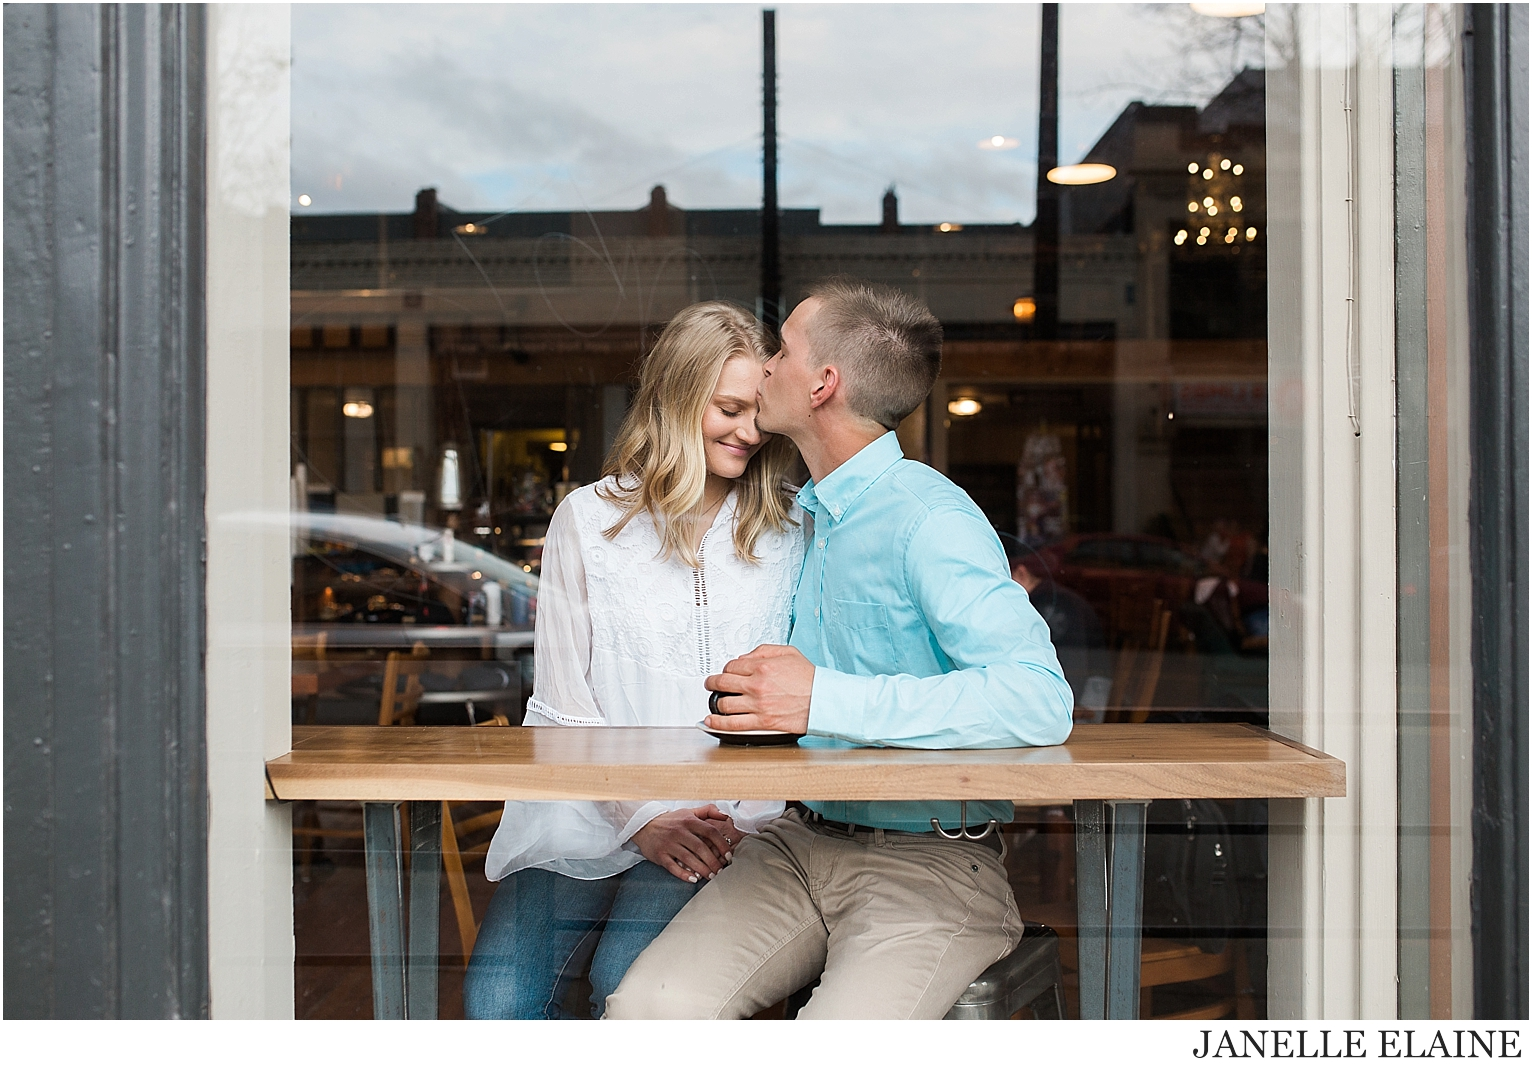 tricia and nate engagement photos-janelle elaine photography-185.jpg